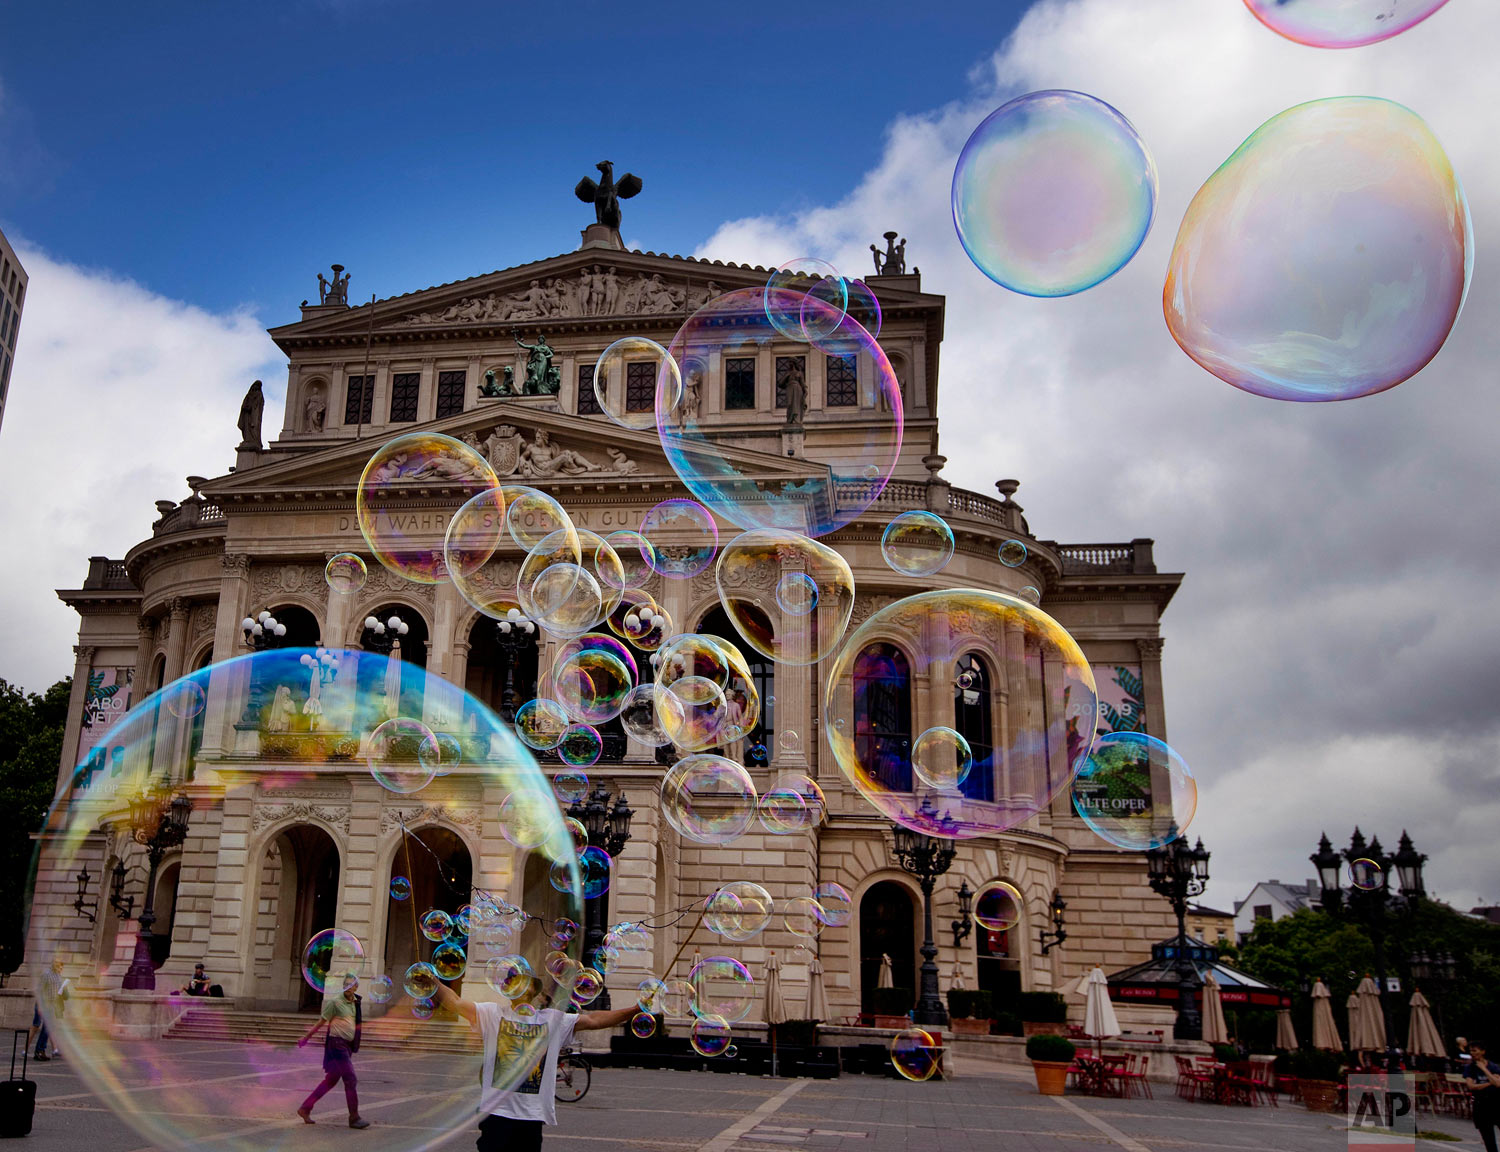 A bubble artist performs with soap bubbles in front of the Old Opera in Frankfurt, Germany, Friday, June 1, 2018. (AP Photo/Michael Probst)